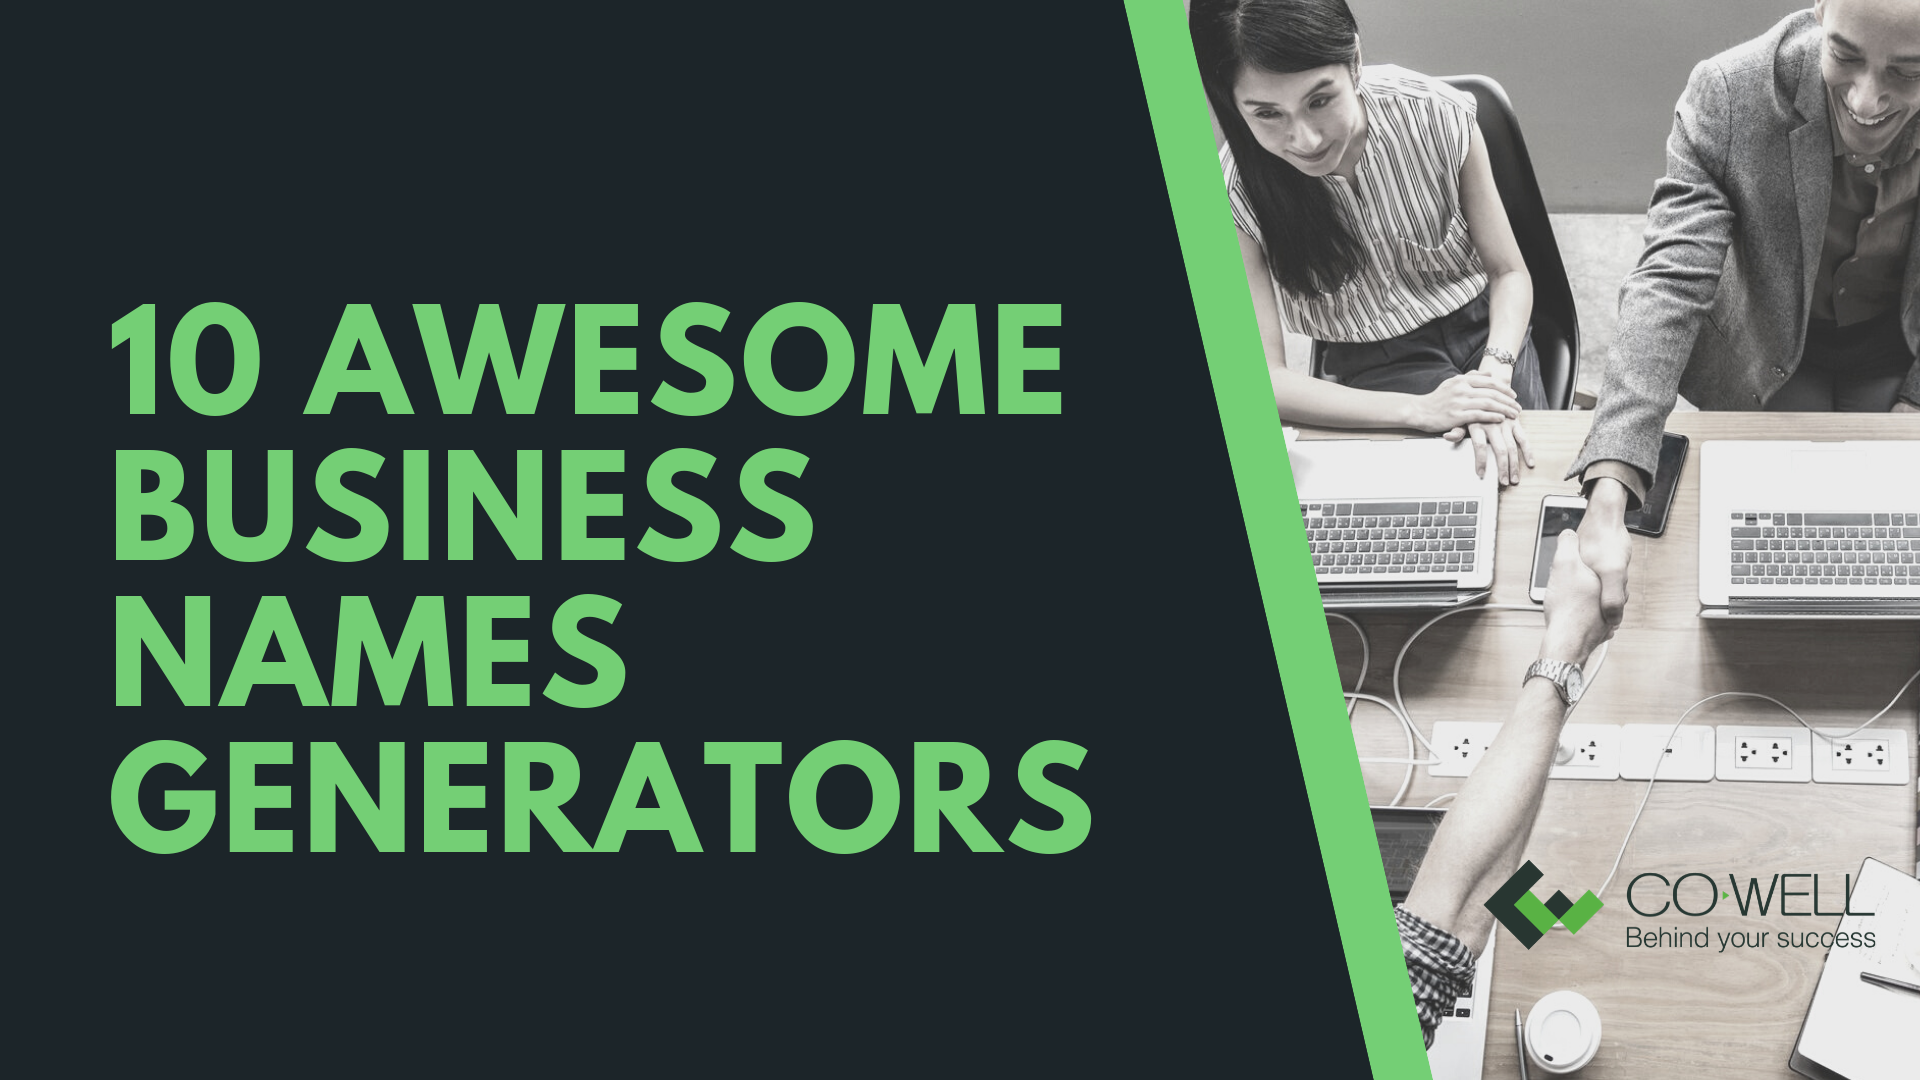 10 AWESOME BUSINESS NAMES GENERATOR